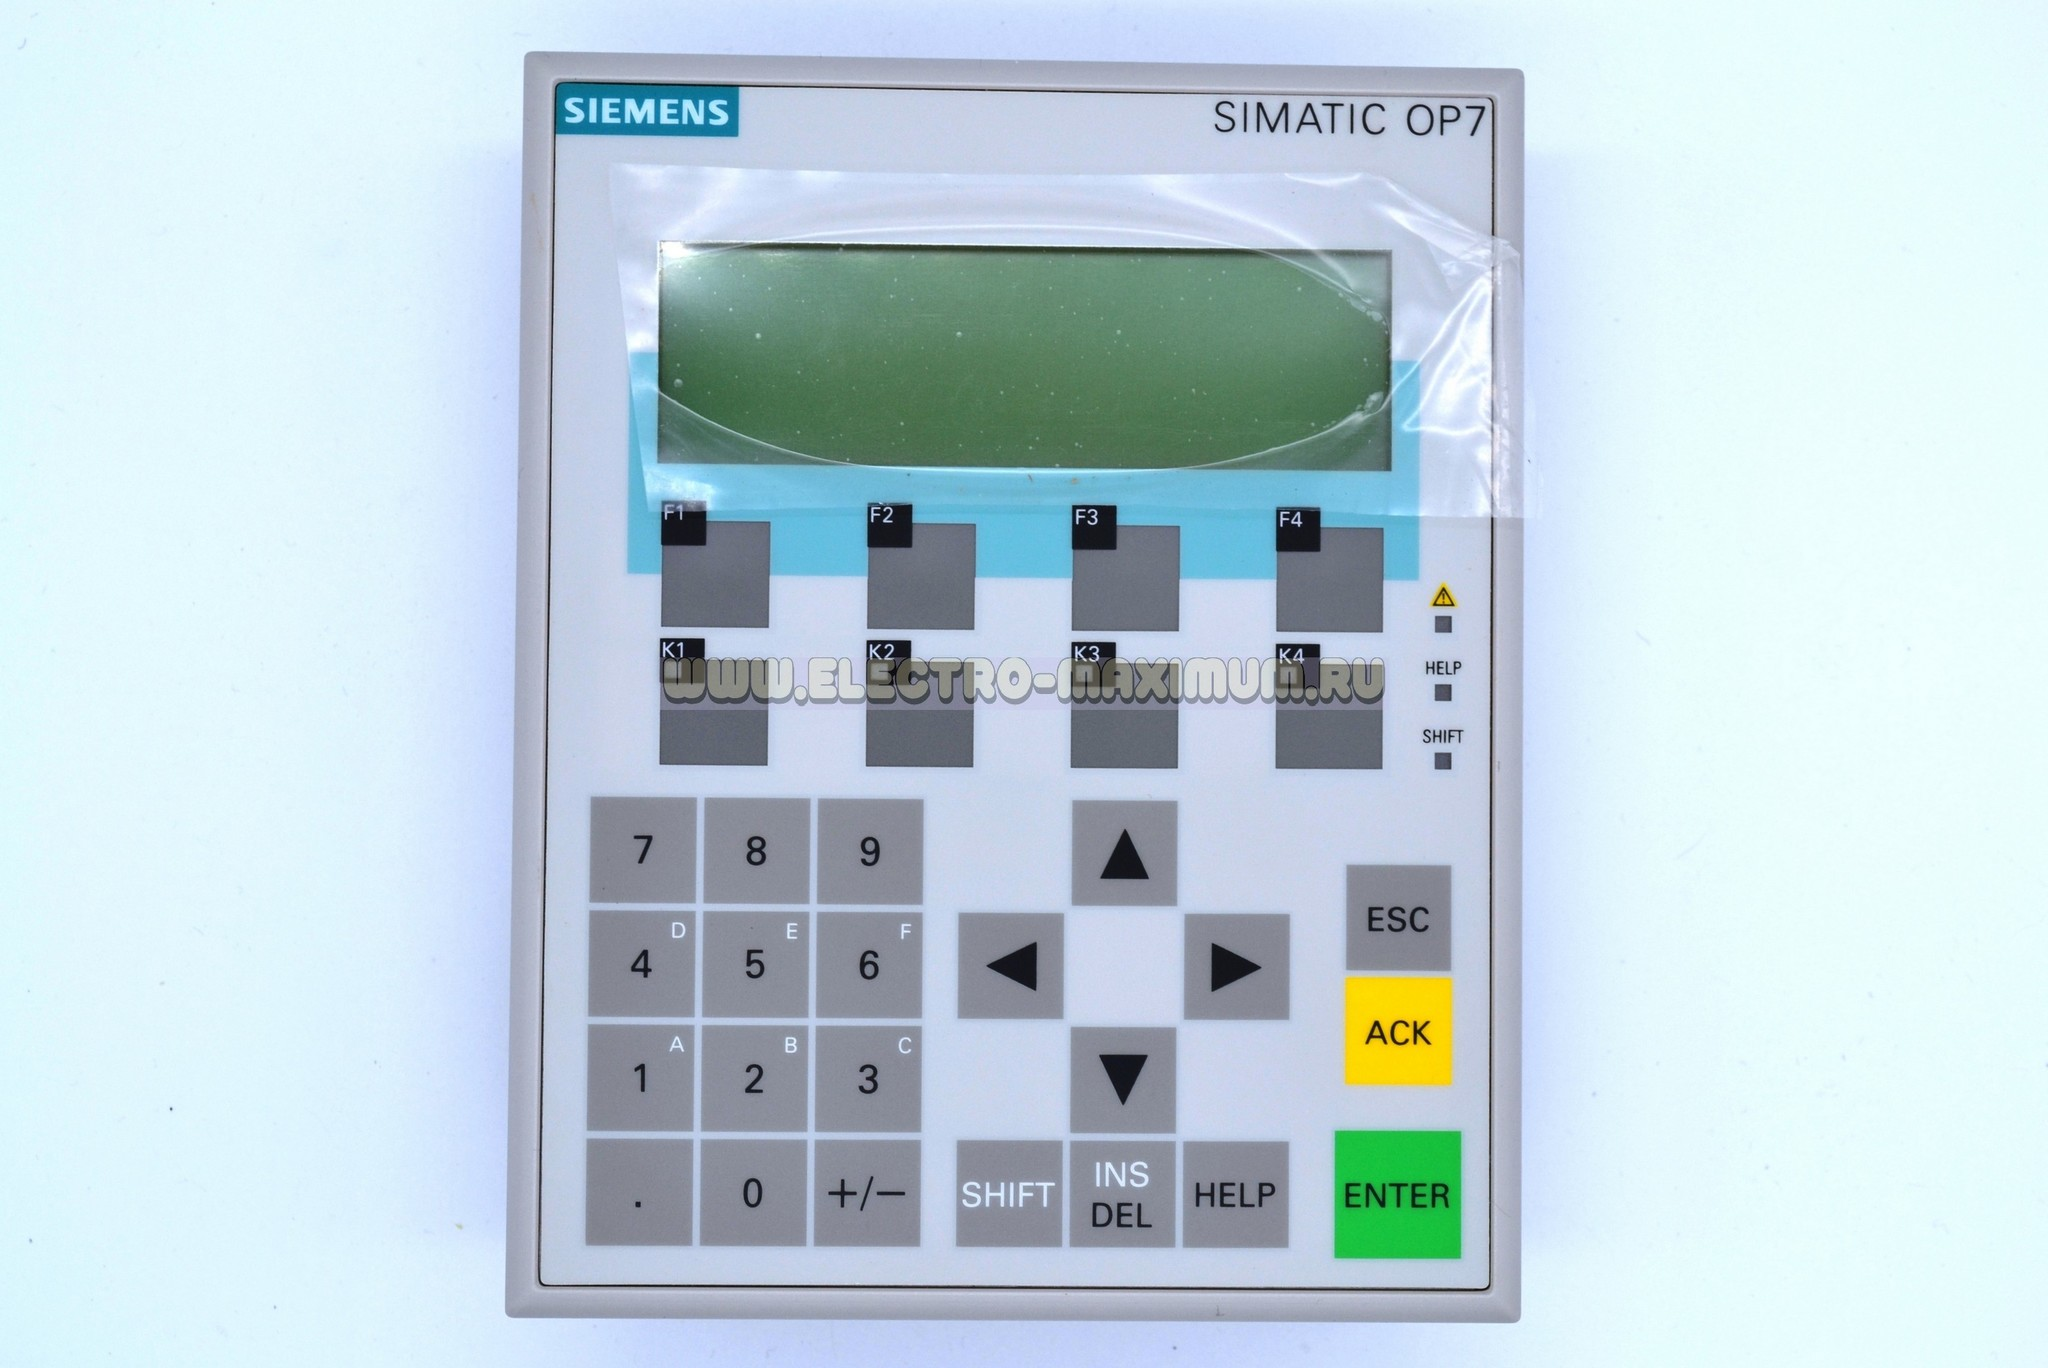 SIEMENS Simatic OP7/DP 6AV3607-1JC00-0AX1